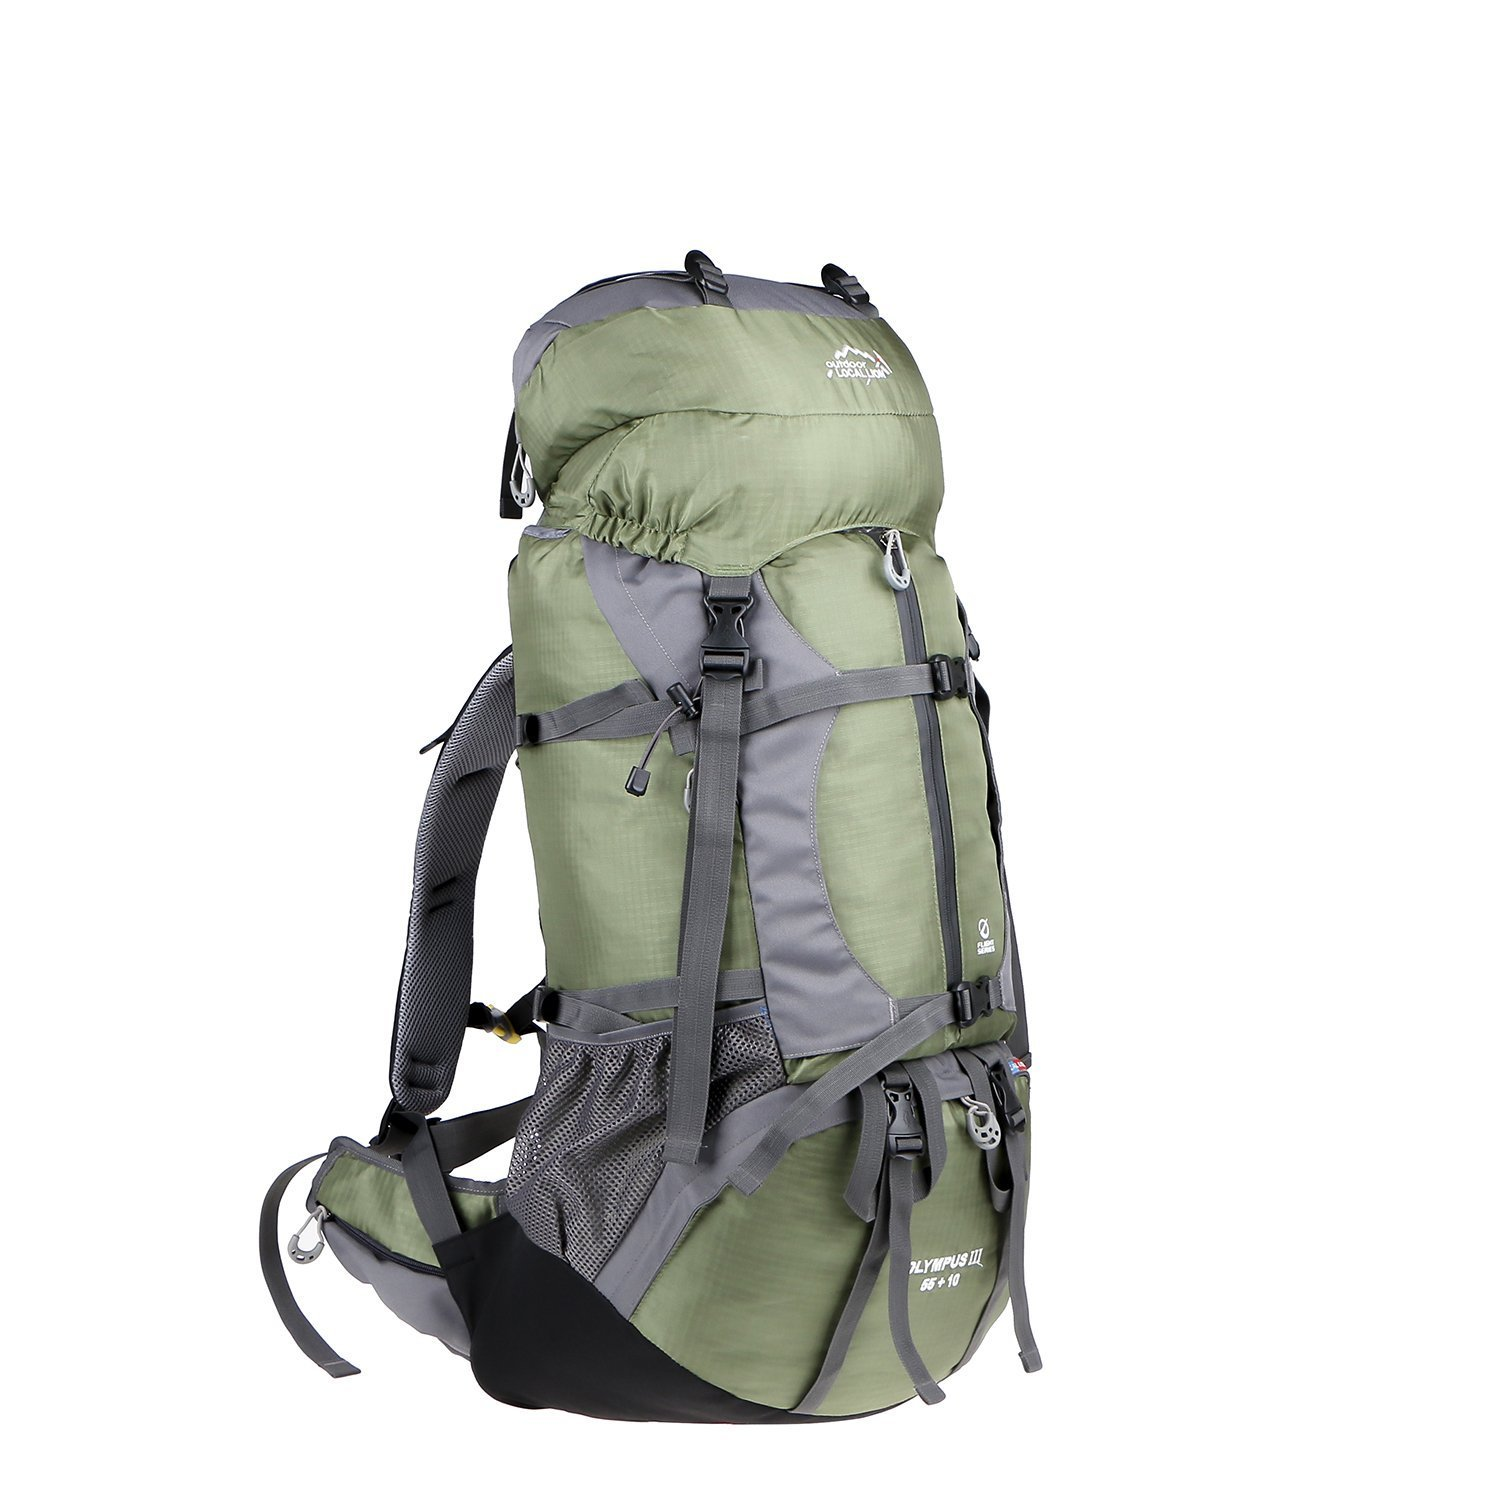 Mountaintop 65l Internal Frame Backpack Hiking Backpack  91d1dfba5b1ab